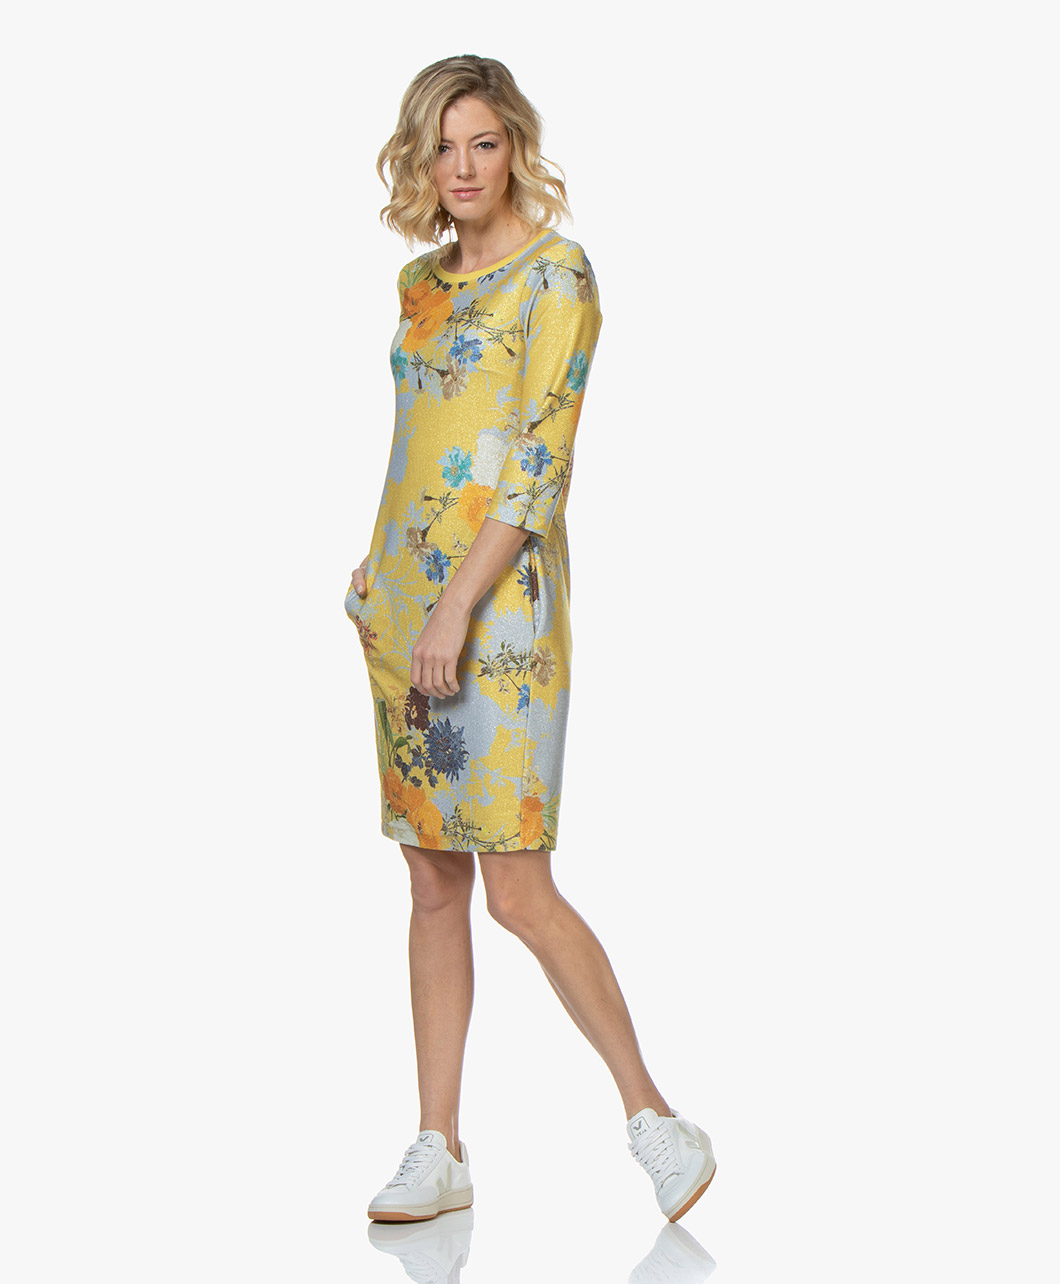 3252575c615dcc Kyra   Ko Milica Lurex Printed Dress - Yellow - milica